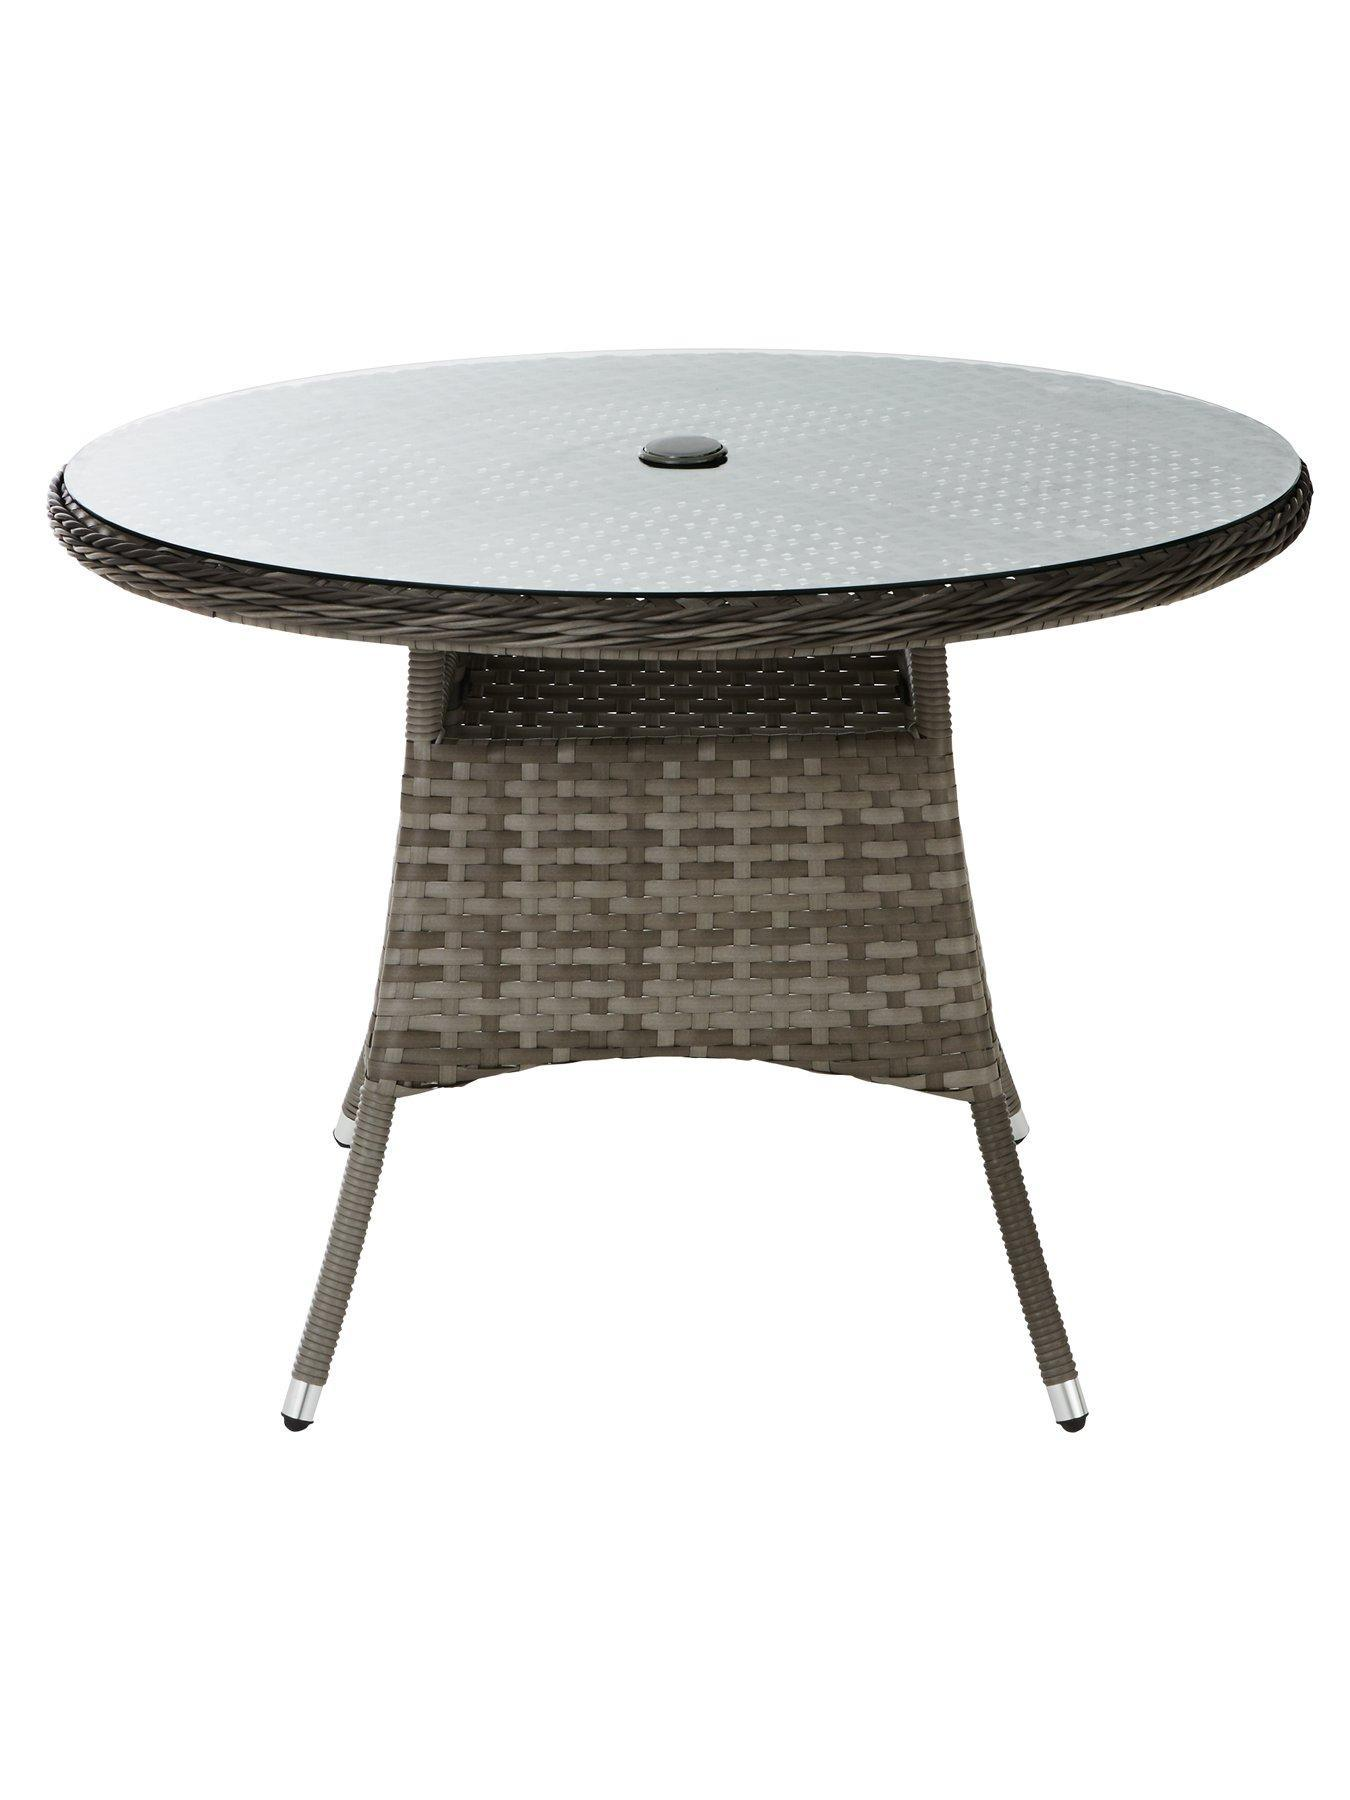 Grey Color Stylish Chair & Round Tables Durable 5 Piece Rattan Dining Set